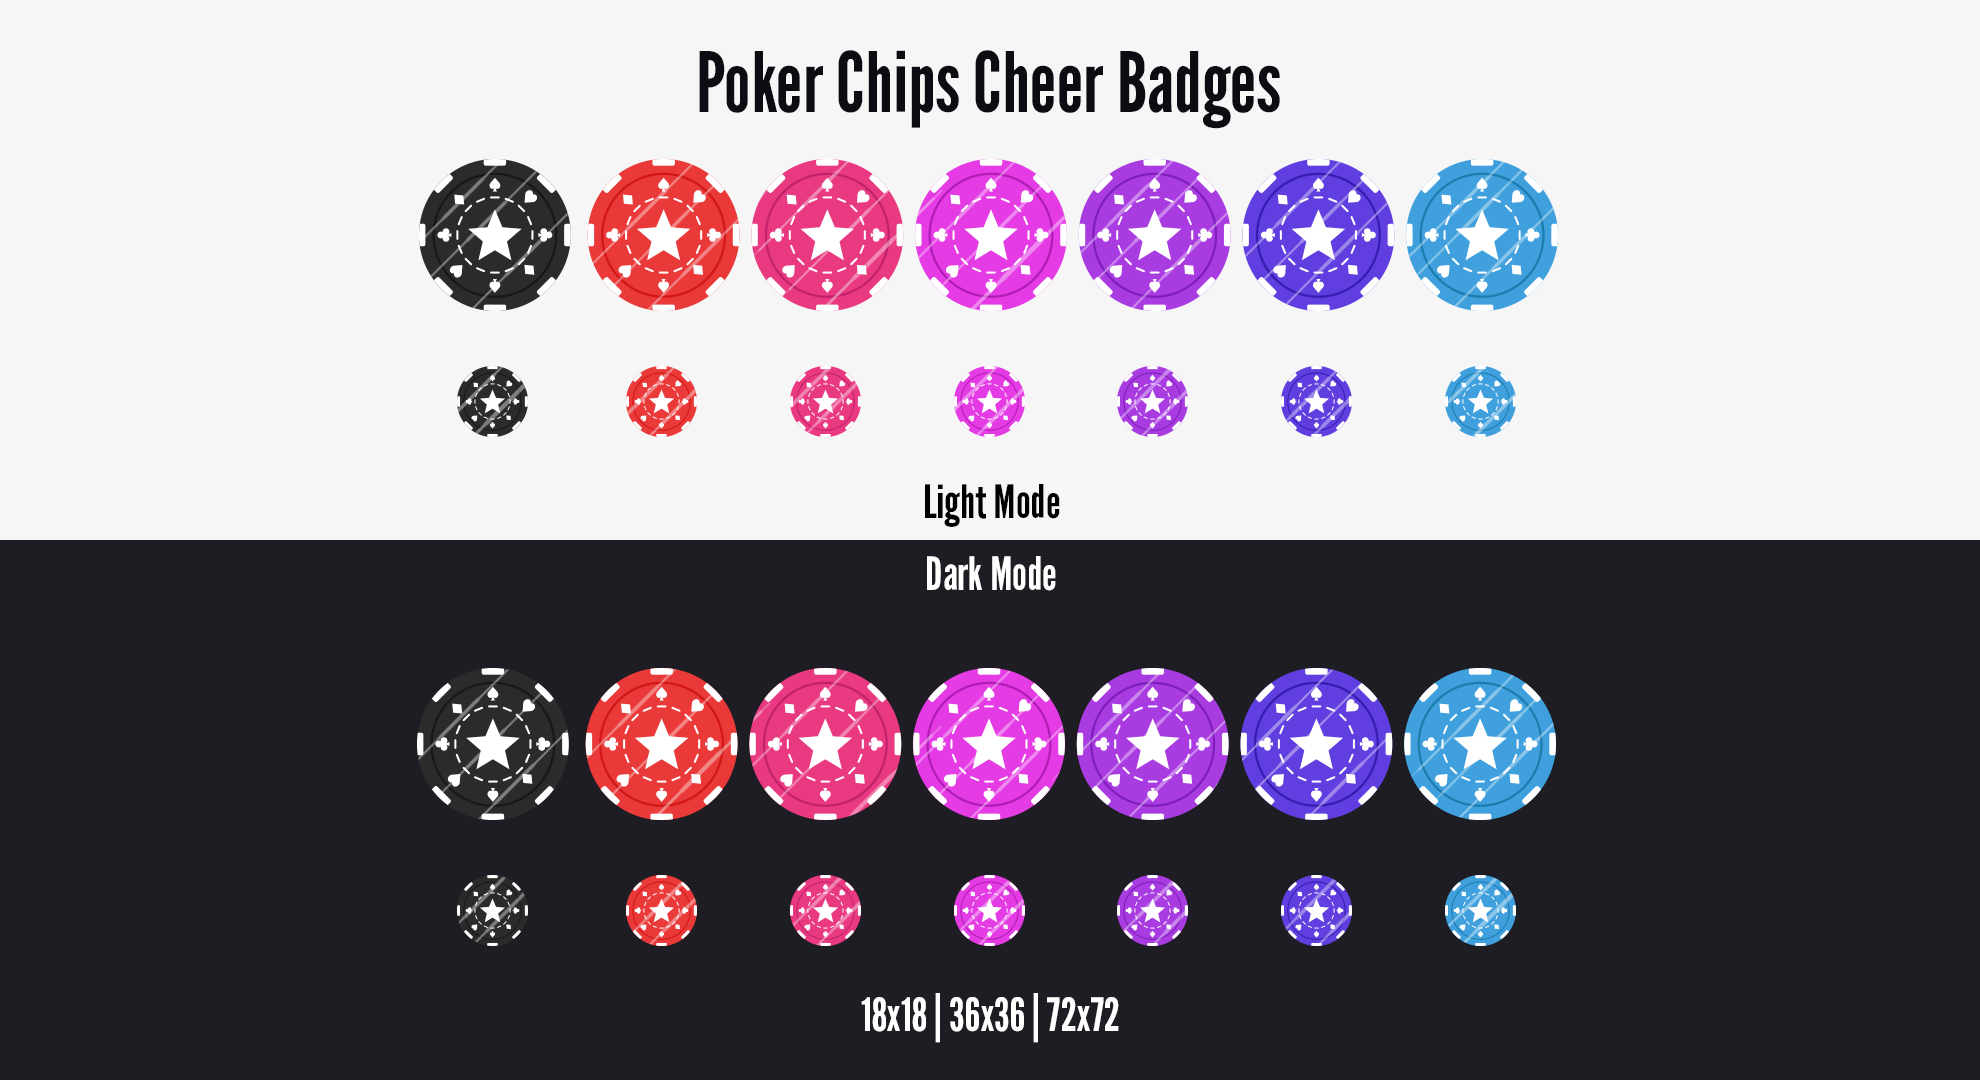 Twitch Cheer Badges Poker Chips